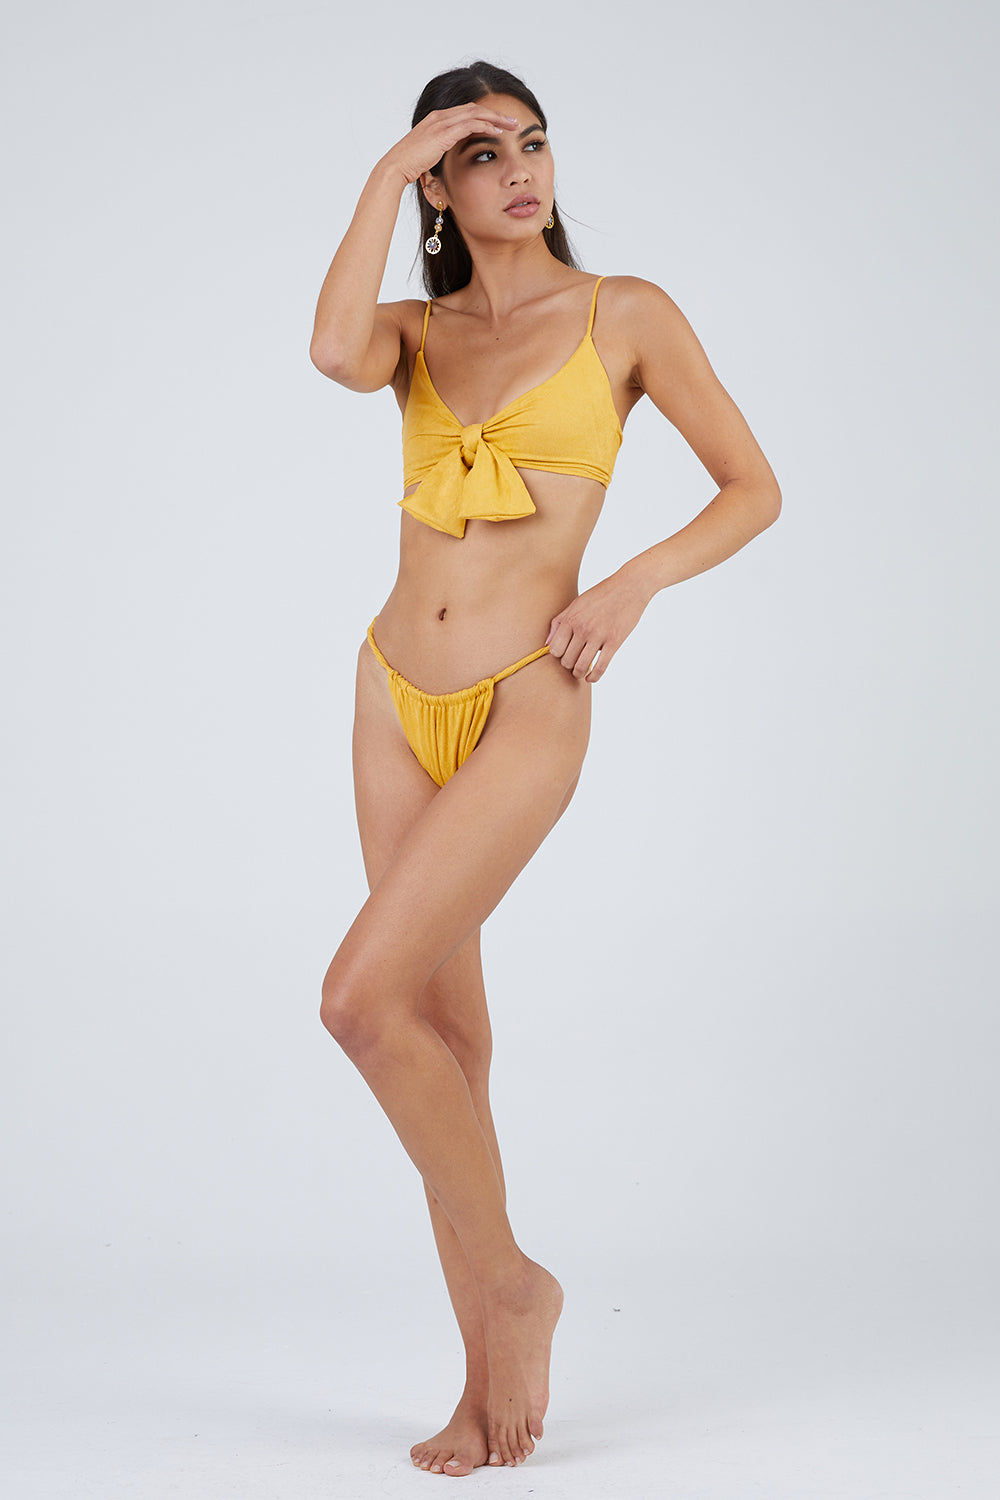 MONICA HANSEN BEACHWEAR Start Me Up Front Scrunch Bikini Bottom - Yellow Suede Bikini Bottom | Yellow Suede| Monica Hansen Start Me Up Front Scrunch Bikini Bottom - Yellow Suede Scrunch detail in front and U shaped back High cut leg Cheeky coverage Double fabric on the inside instead of lining Italian fabric 85% Nylon 15% Elastane Manufactured in Italy Hand wash cold.  Dry flat Front View